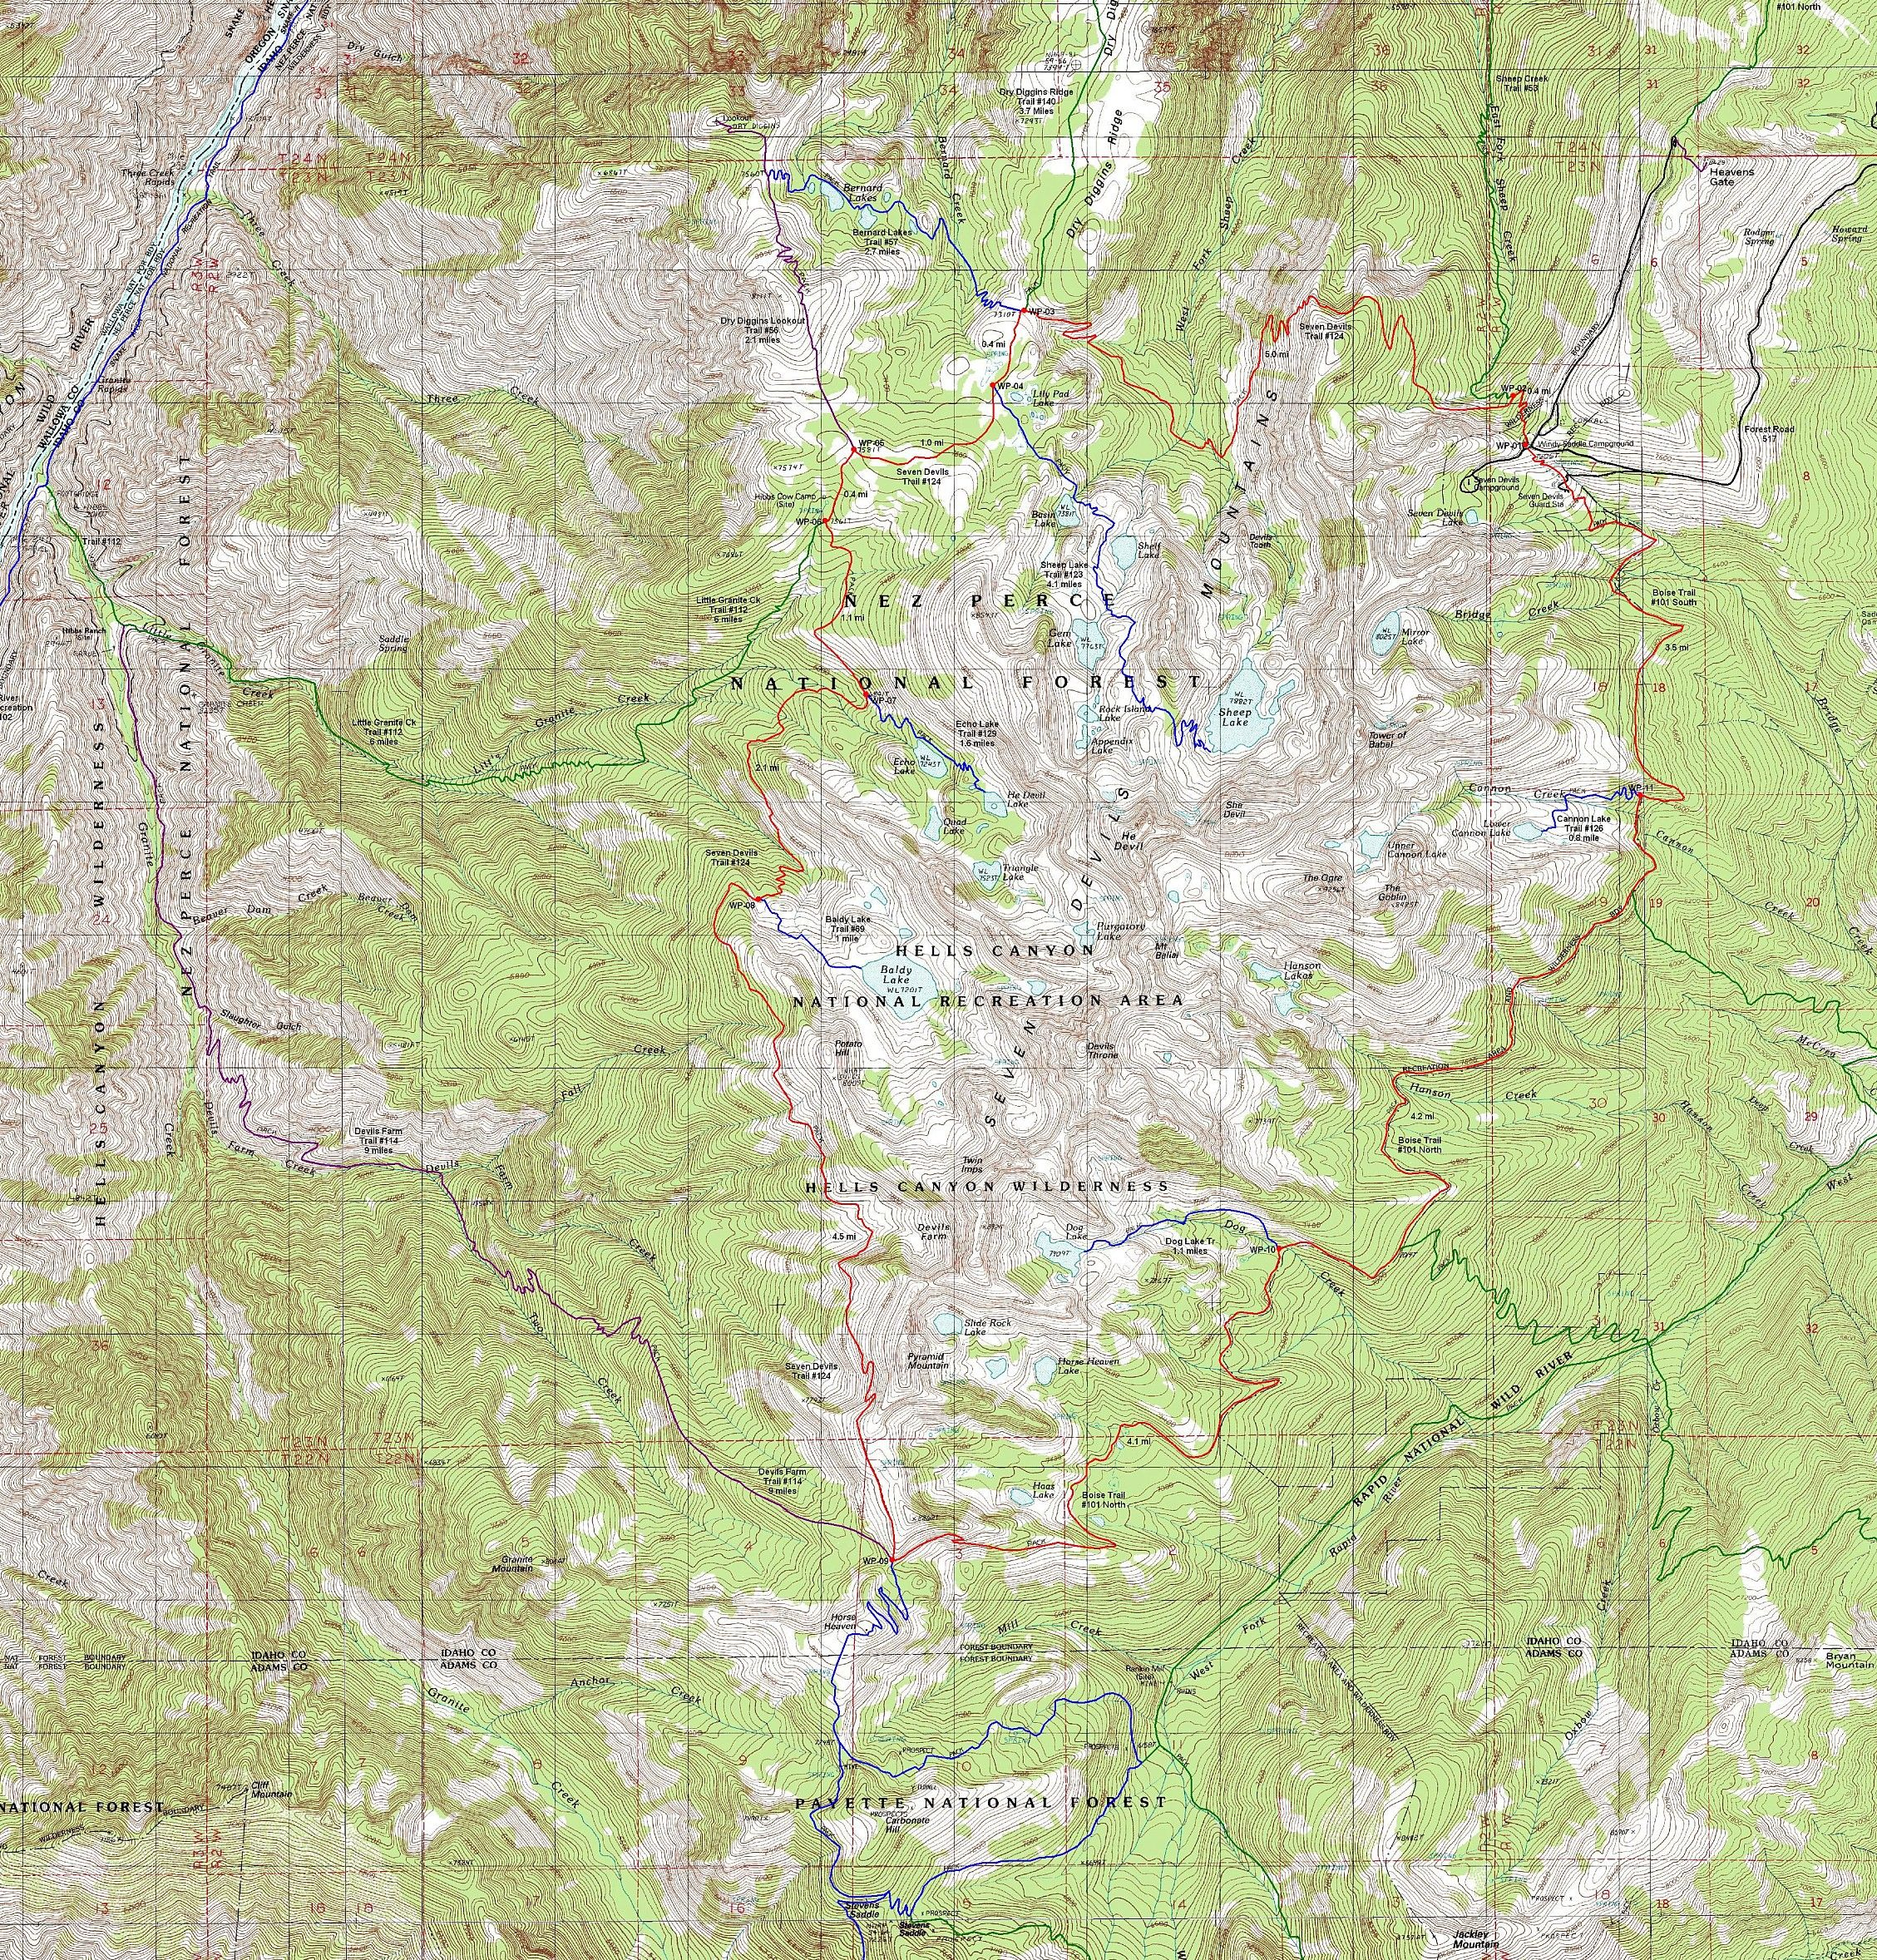 Pin on PCT Detailed Topo Maps on boundary map, us topographical map, area map, map map, tree map, contour map, aerial map, topographic map, city map, kobani map, geologic map, gis map, topography map, stereotypical map, interactive topographical map, relief map, antique world map, road map, iowa state's physical map, soil map,